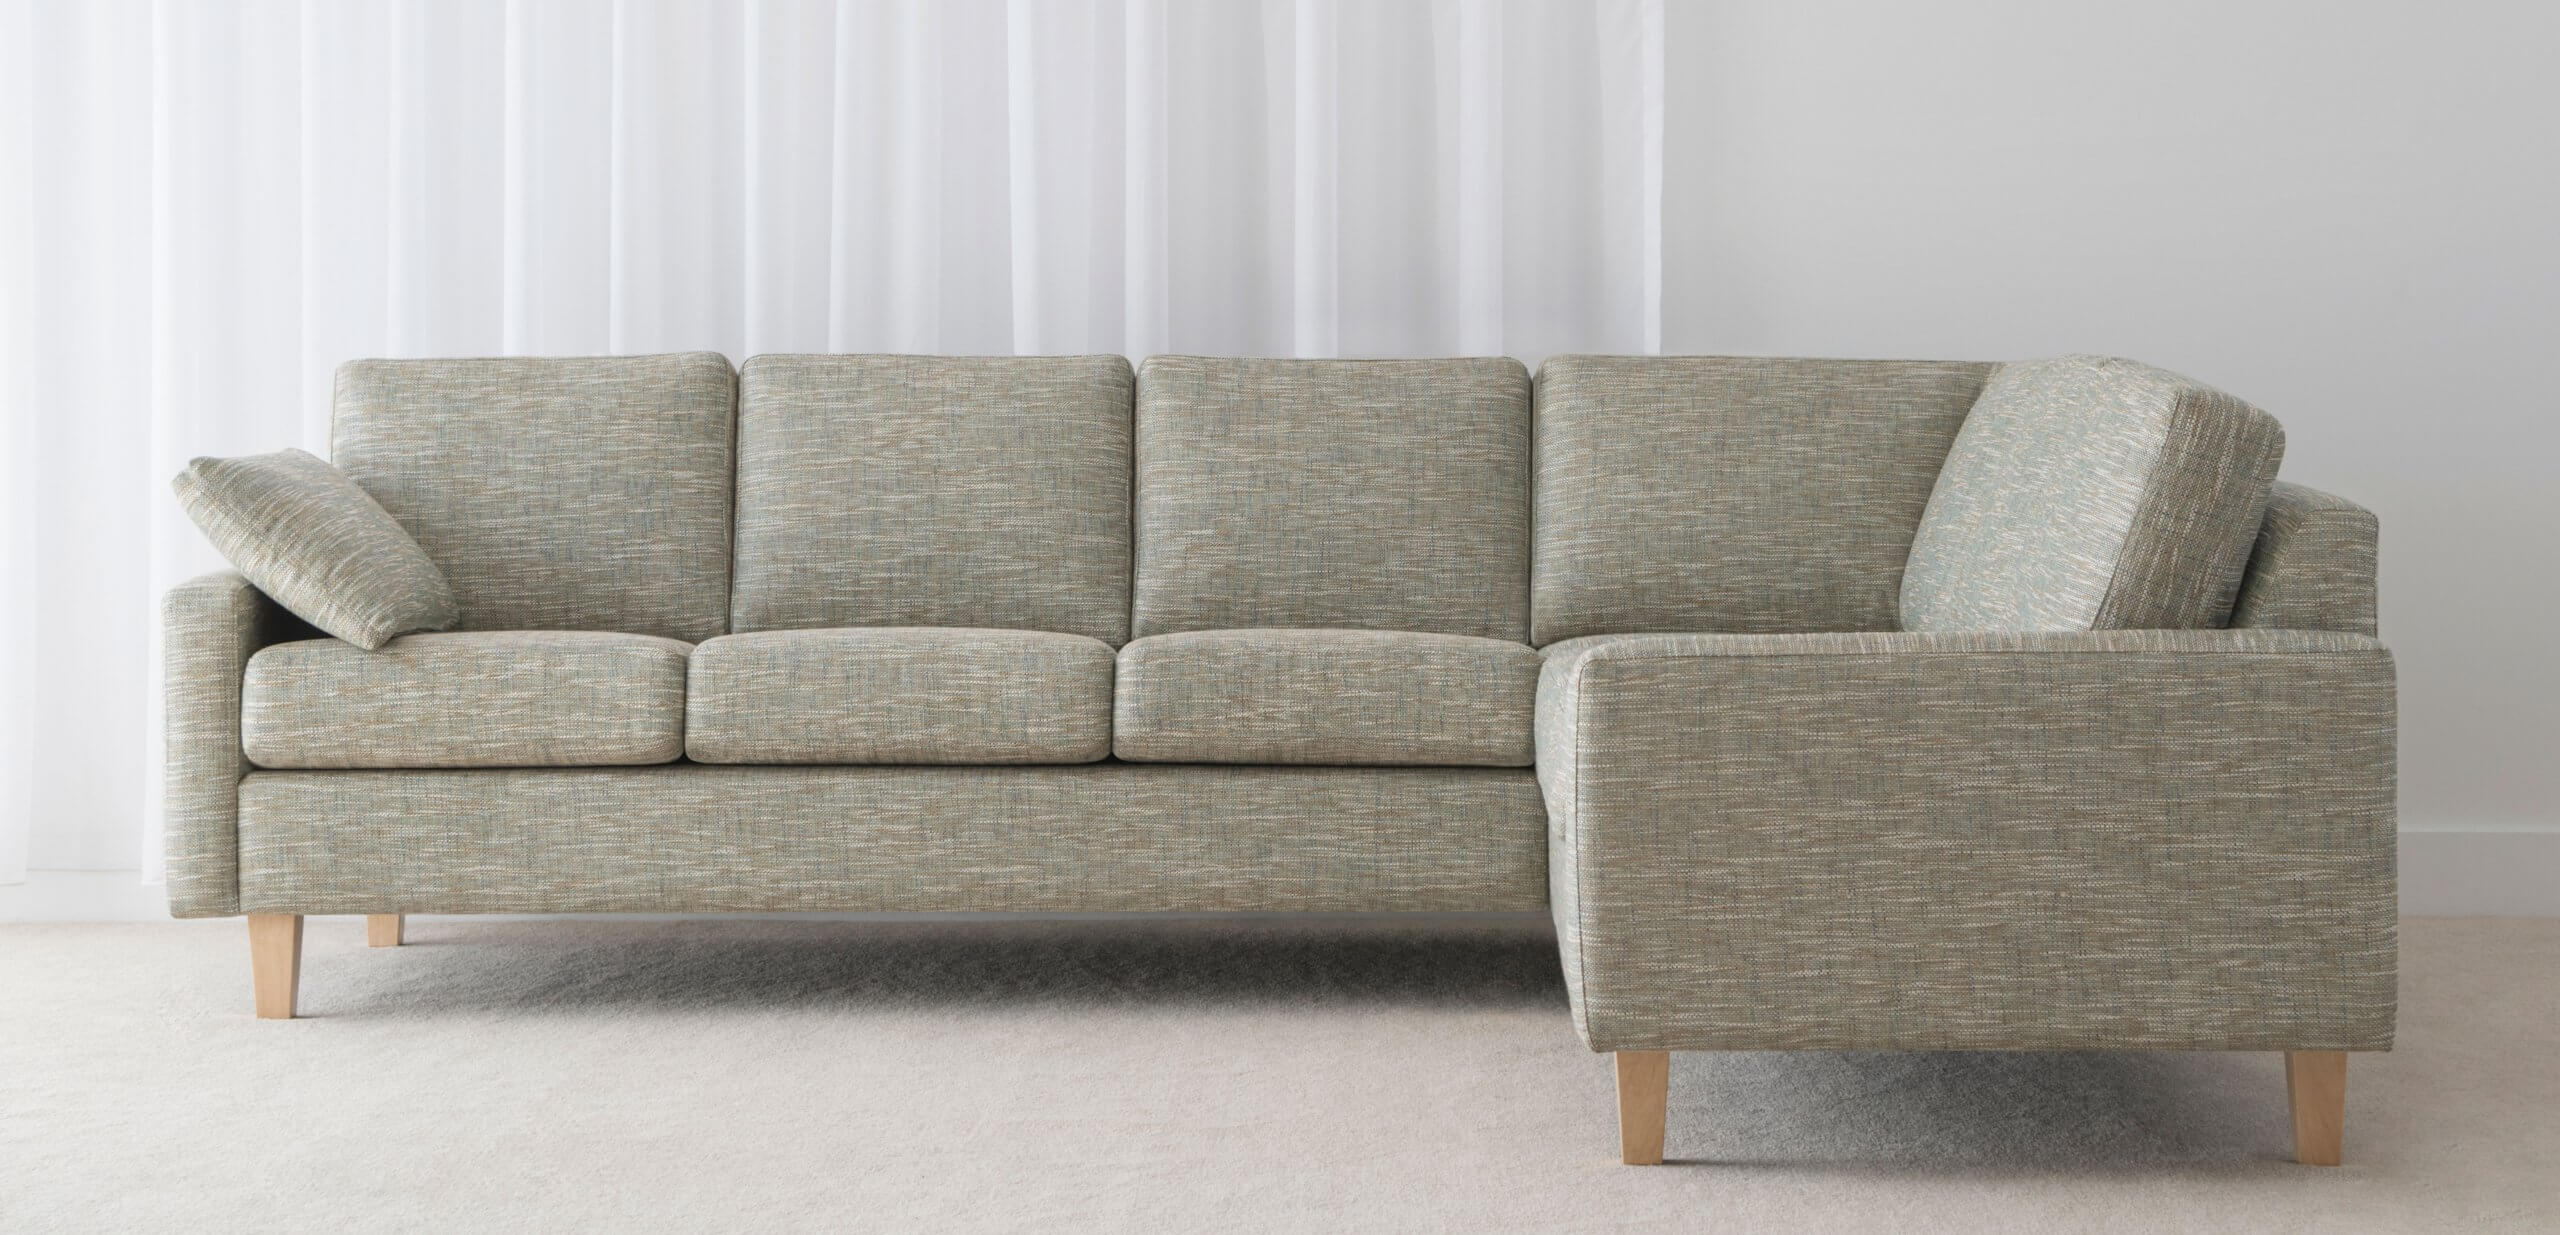 comfortable fabric modular sofa with arm support and individual seat cushions